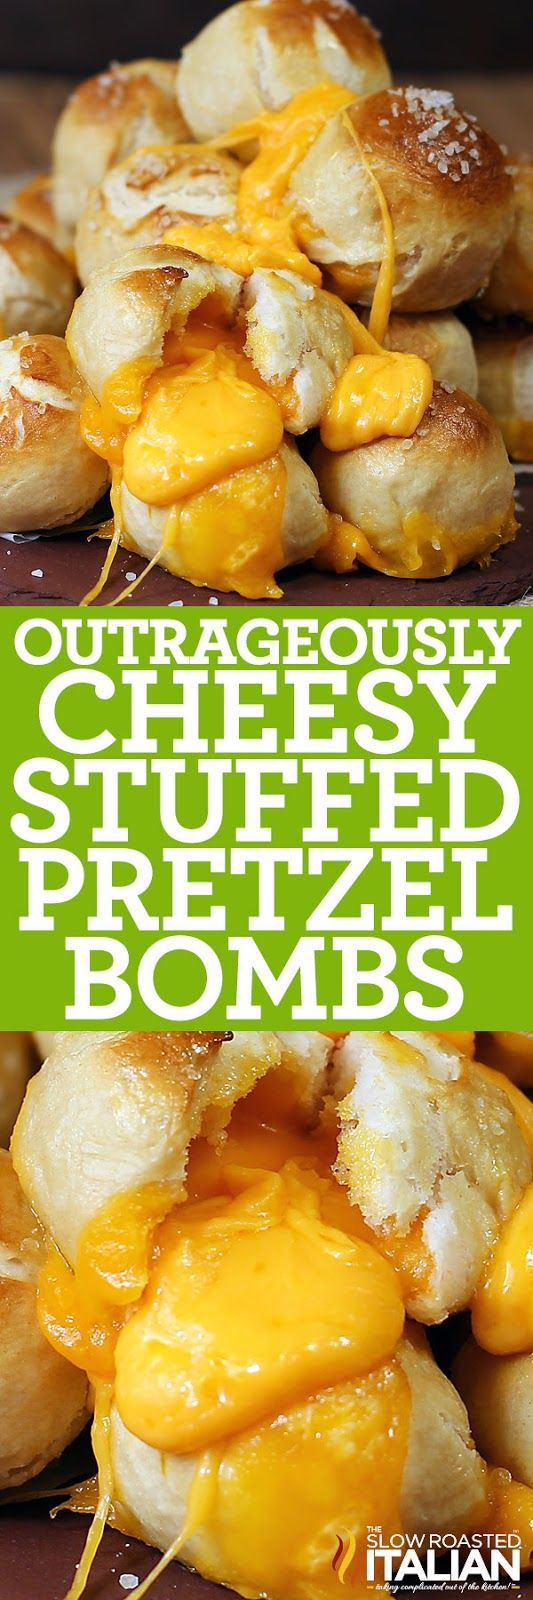 Outrageously Cheesy Stuffed Pretzel Bombs are the perfect bite size appetizer to impress your guests. Pretzel bites are loaded with cheddar cheese and baked to perfection. All of this comes together in under an hour.